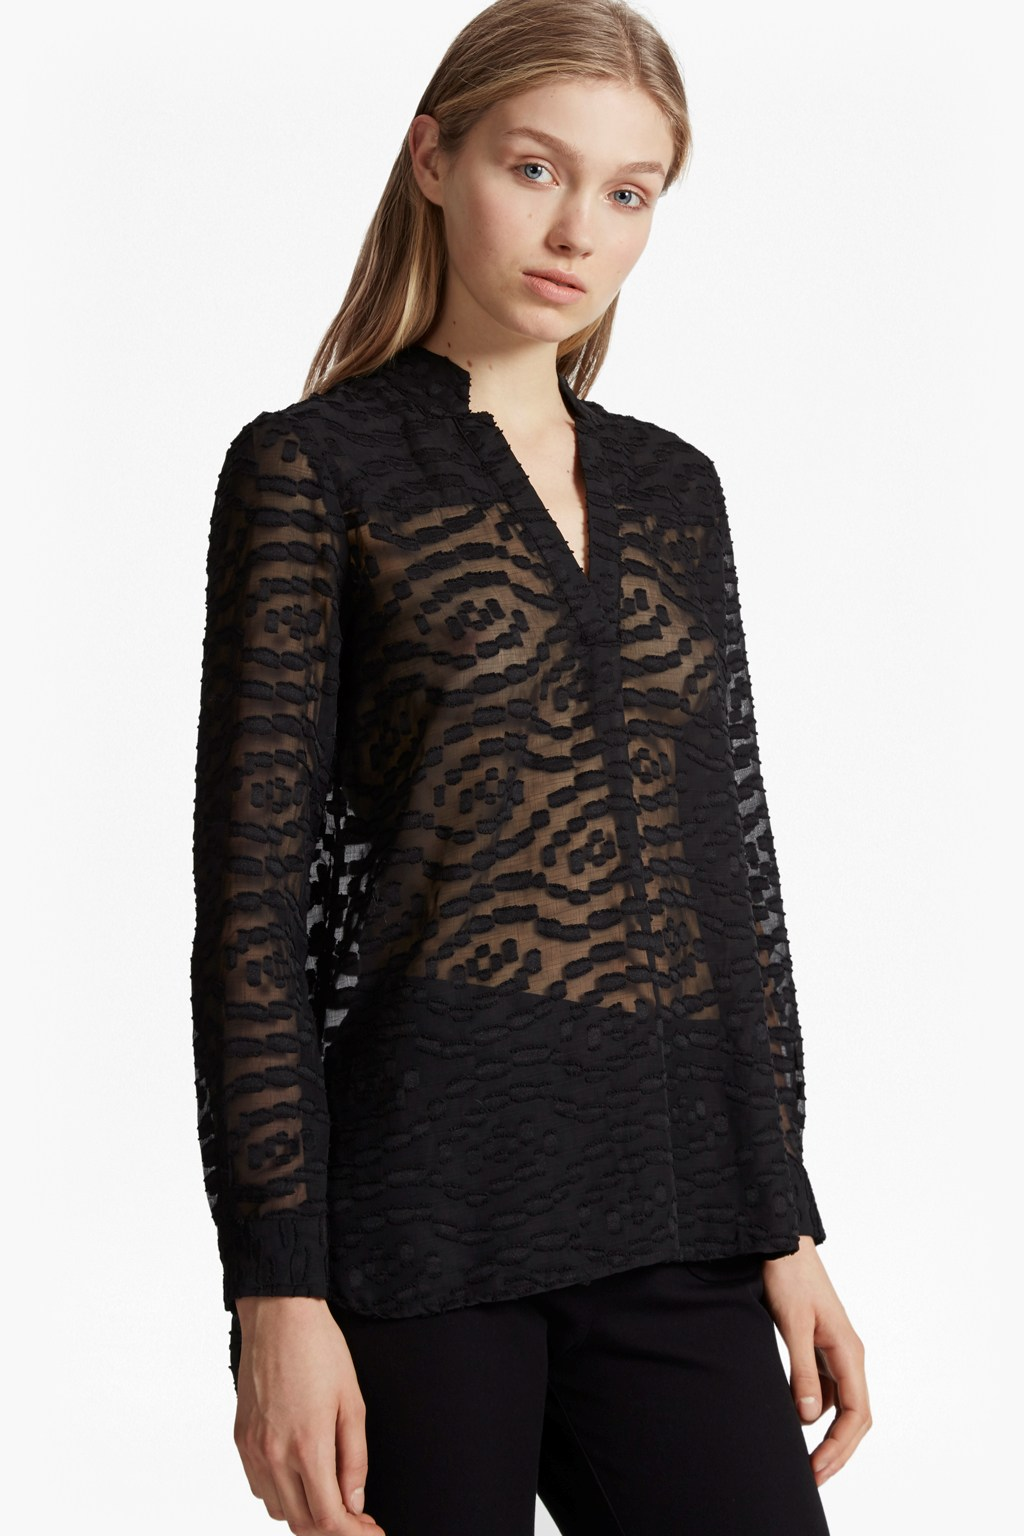 ruby sheer textured shirt collections french connection